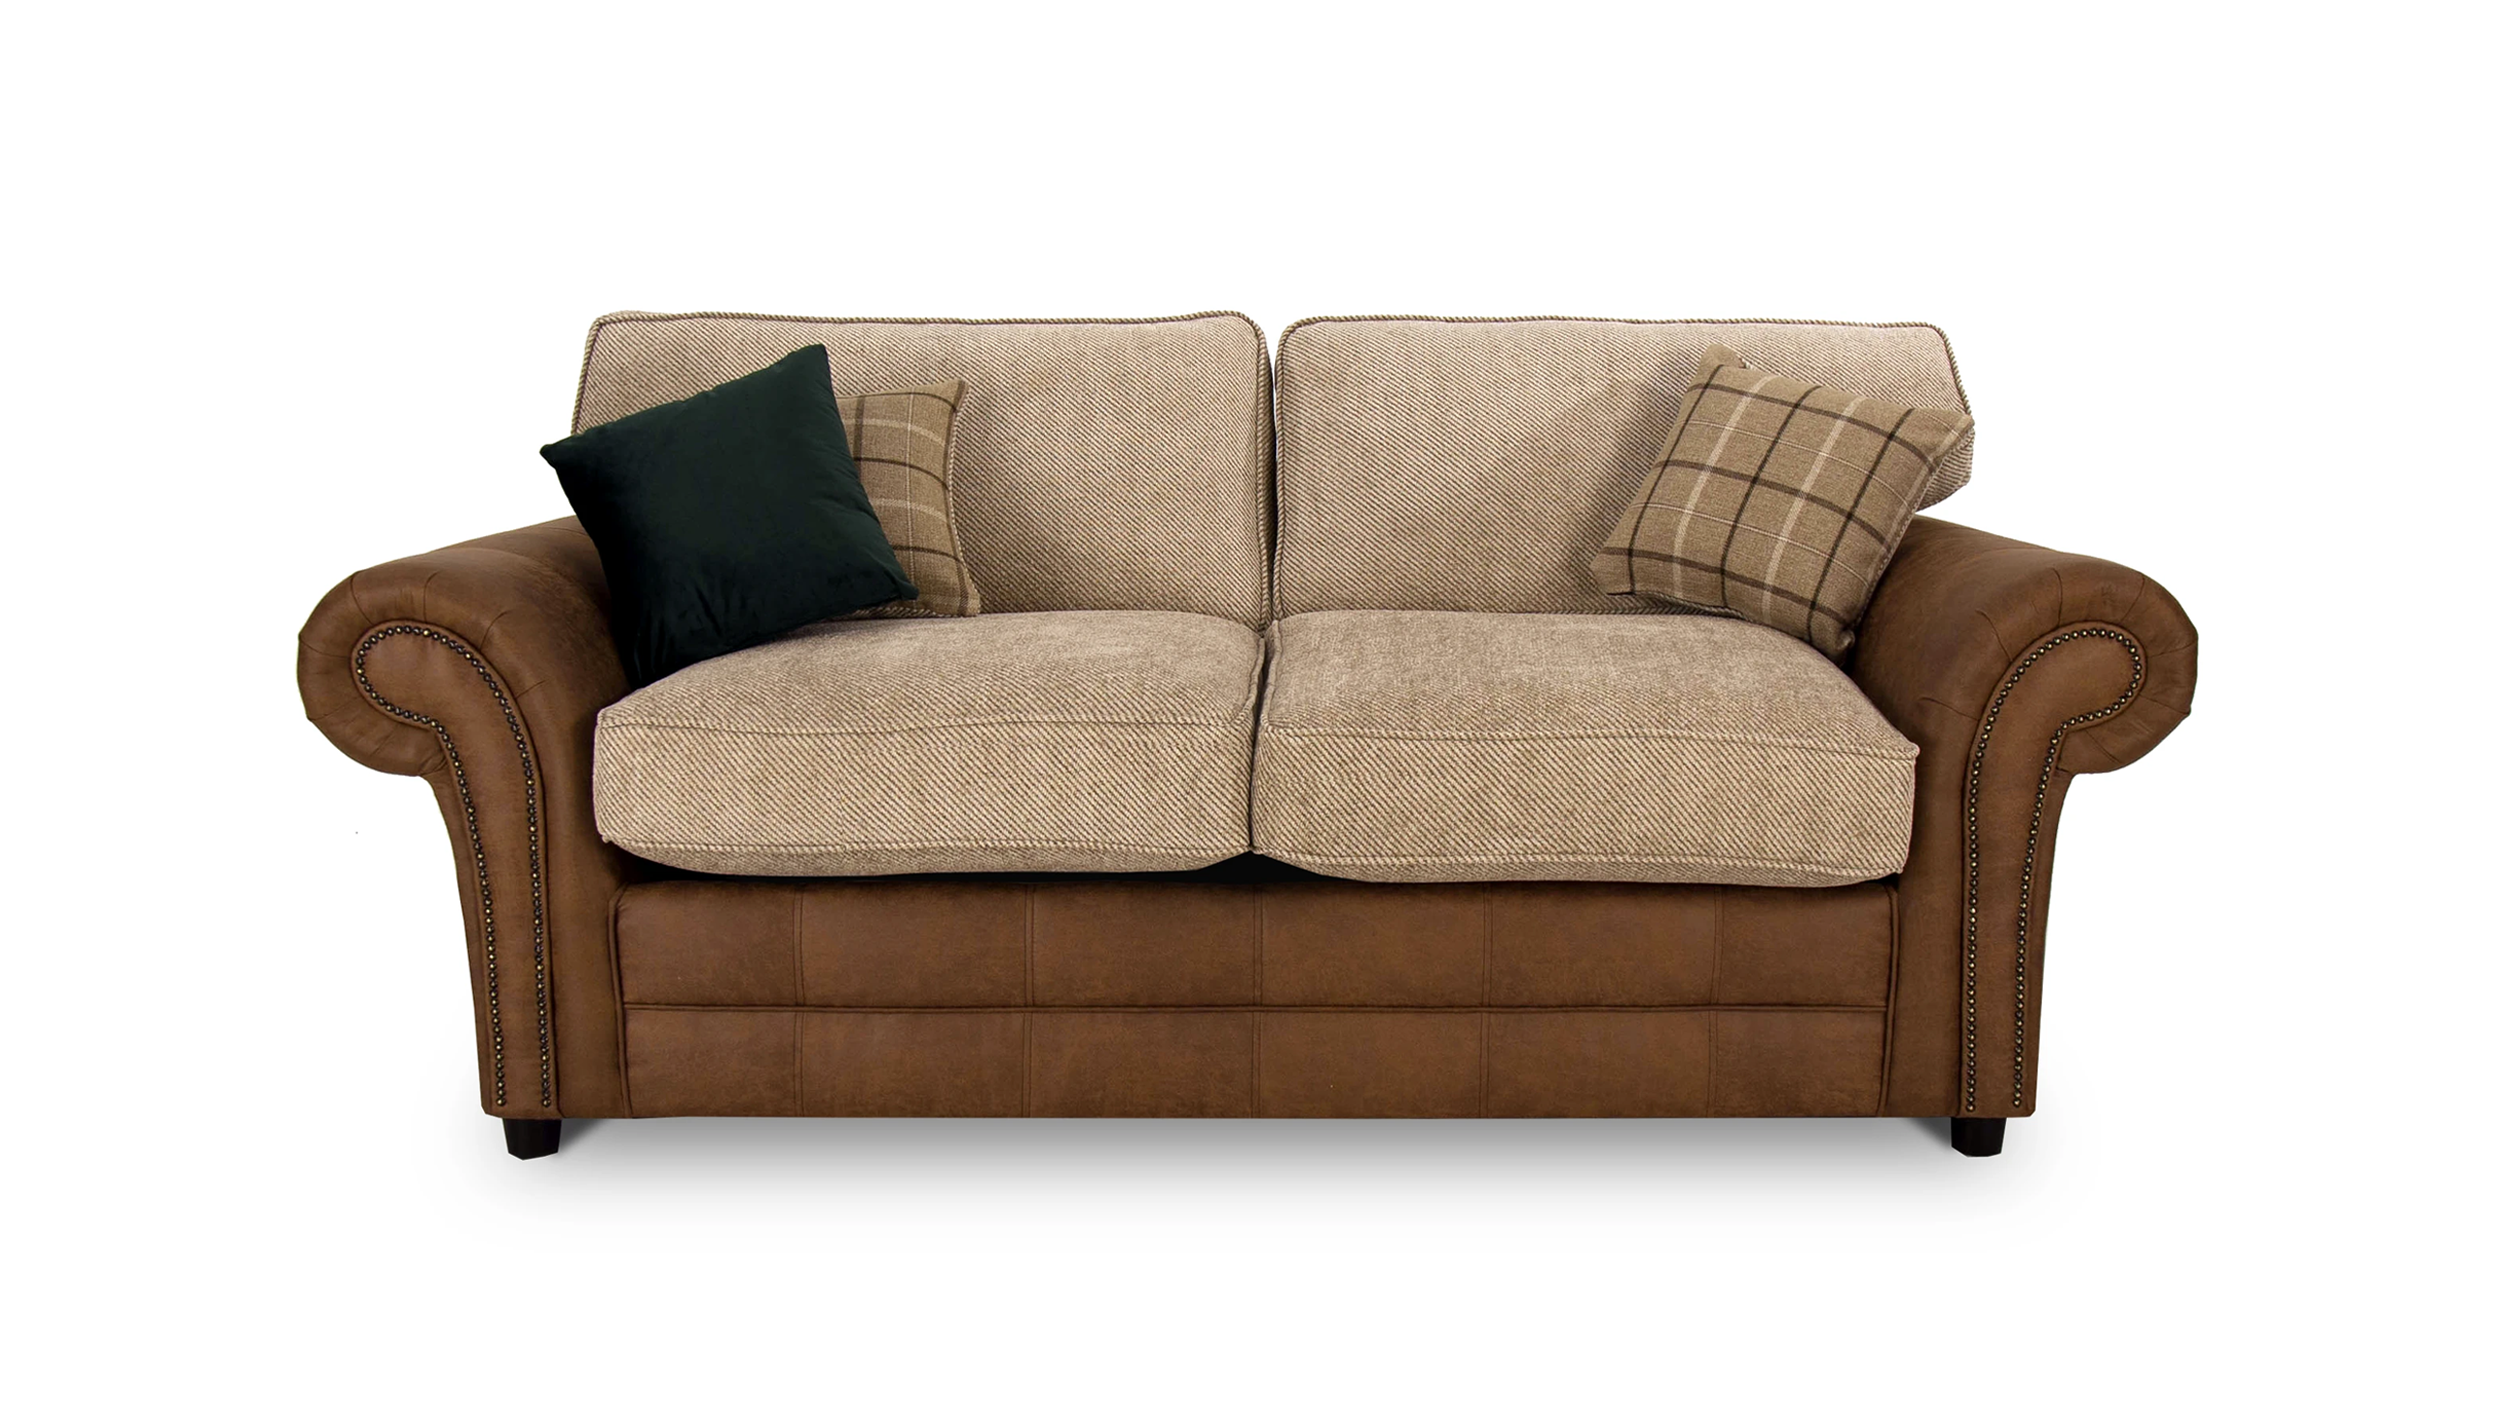 Marshall 3 Seater Standard Back Sofa Bed